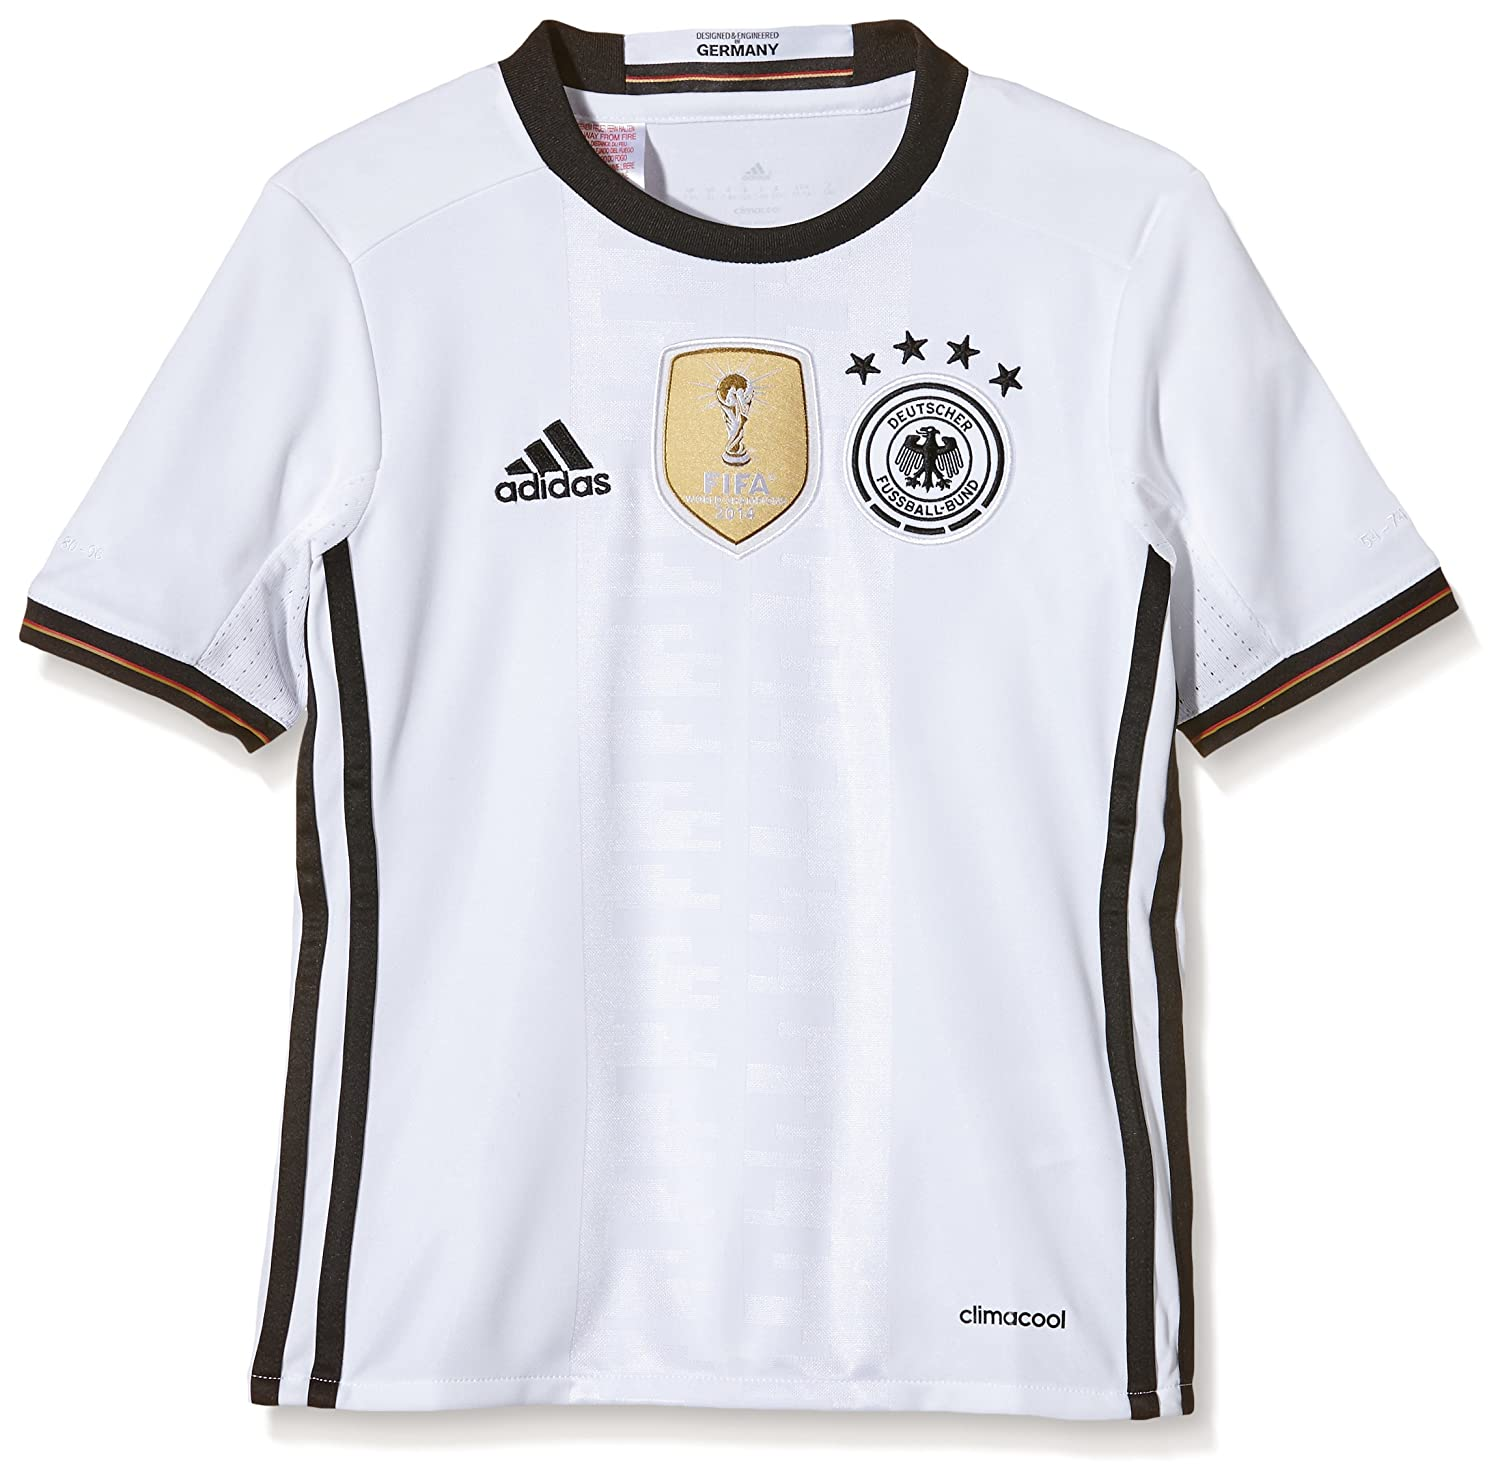 2016-2017 Germany Home Adidas Football Shirt (Kids)